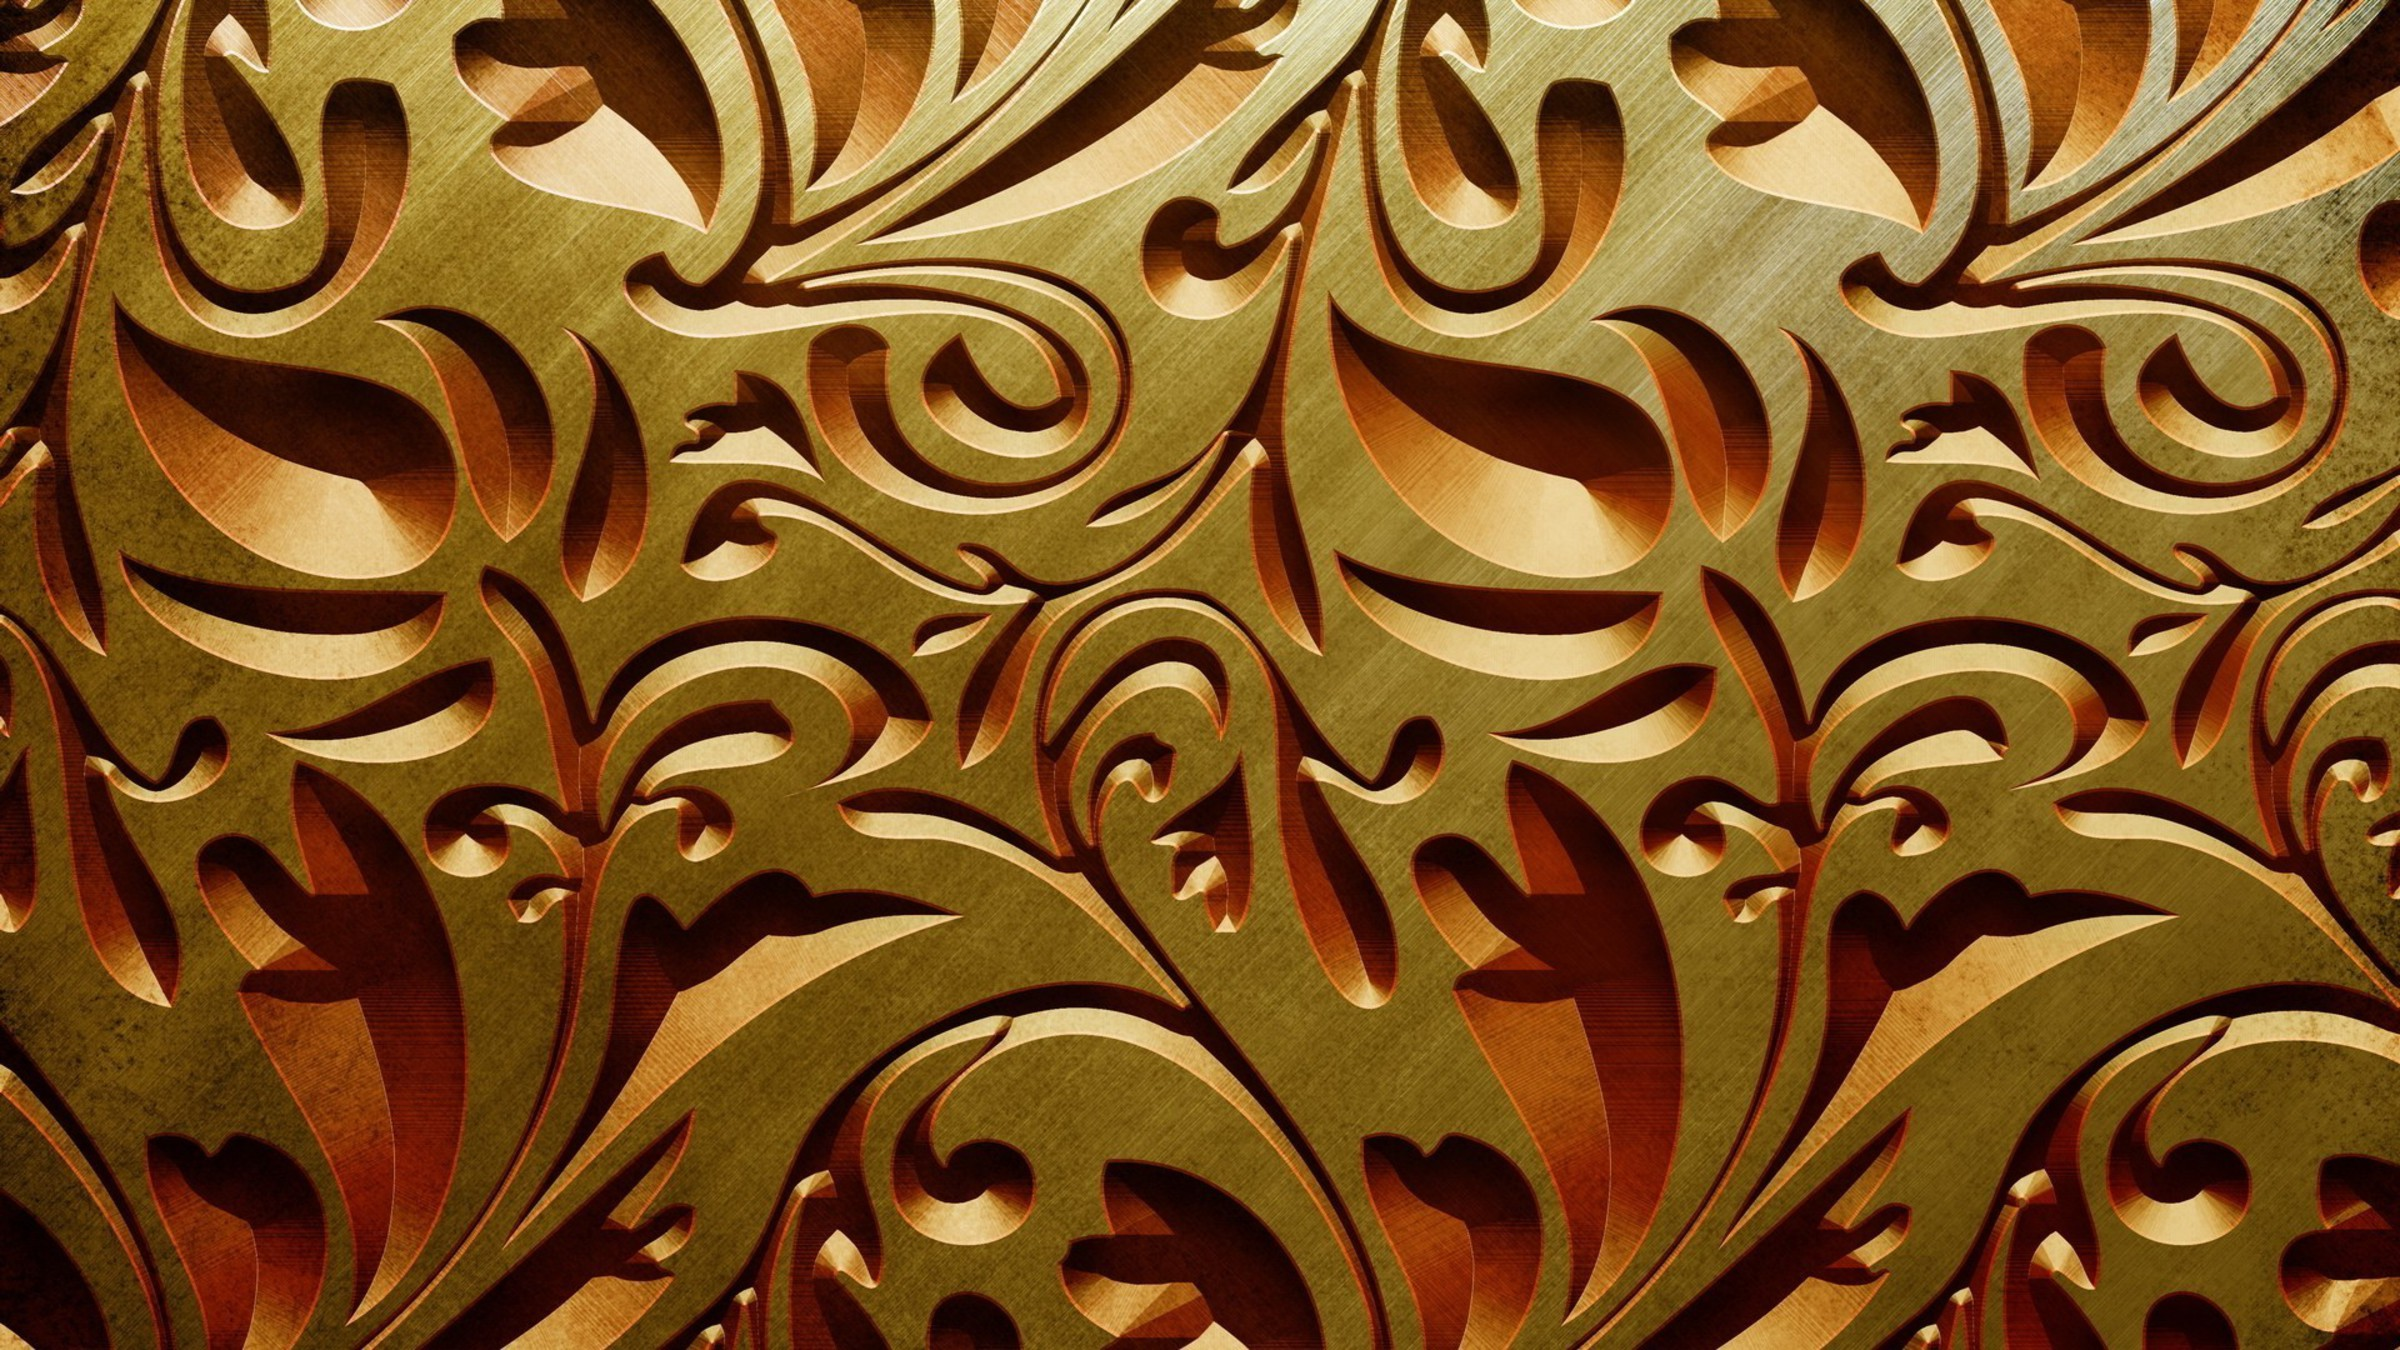 download textures gold floral -#main